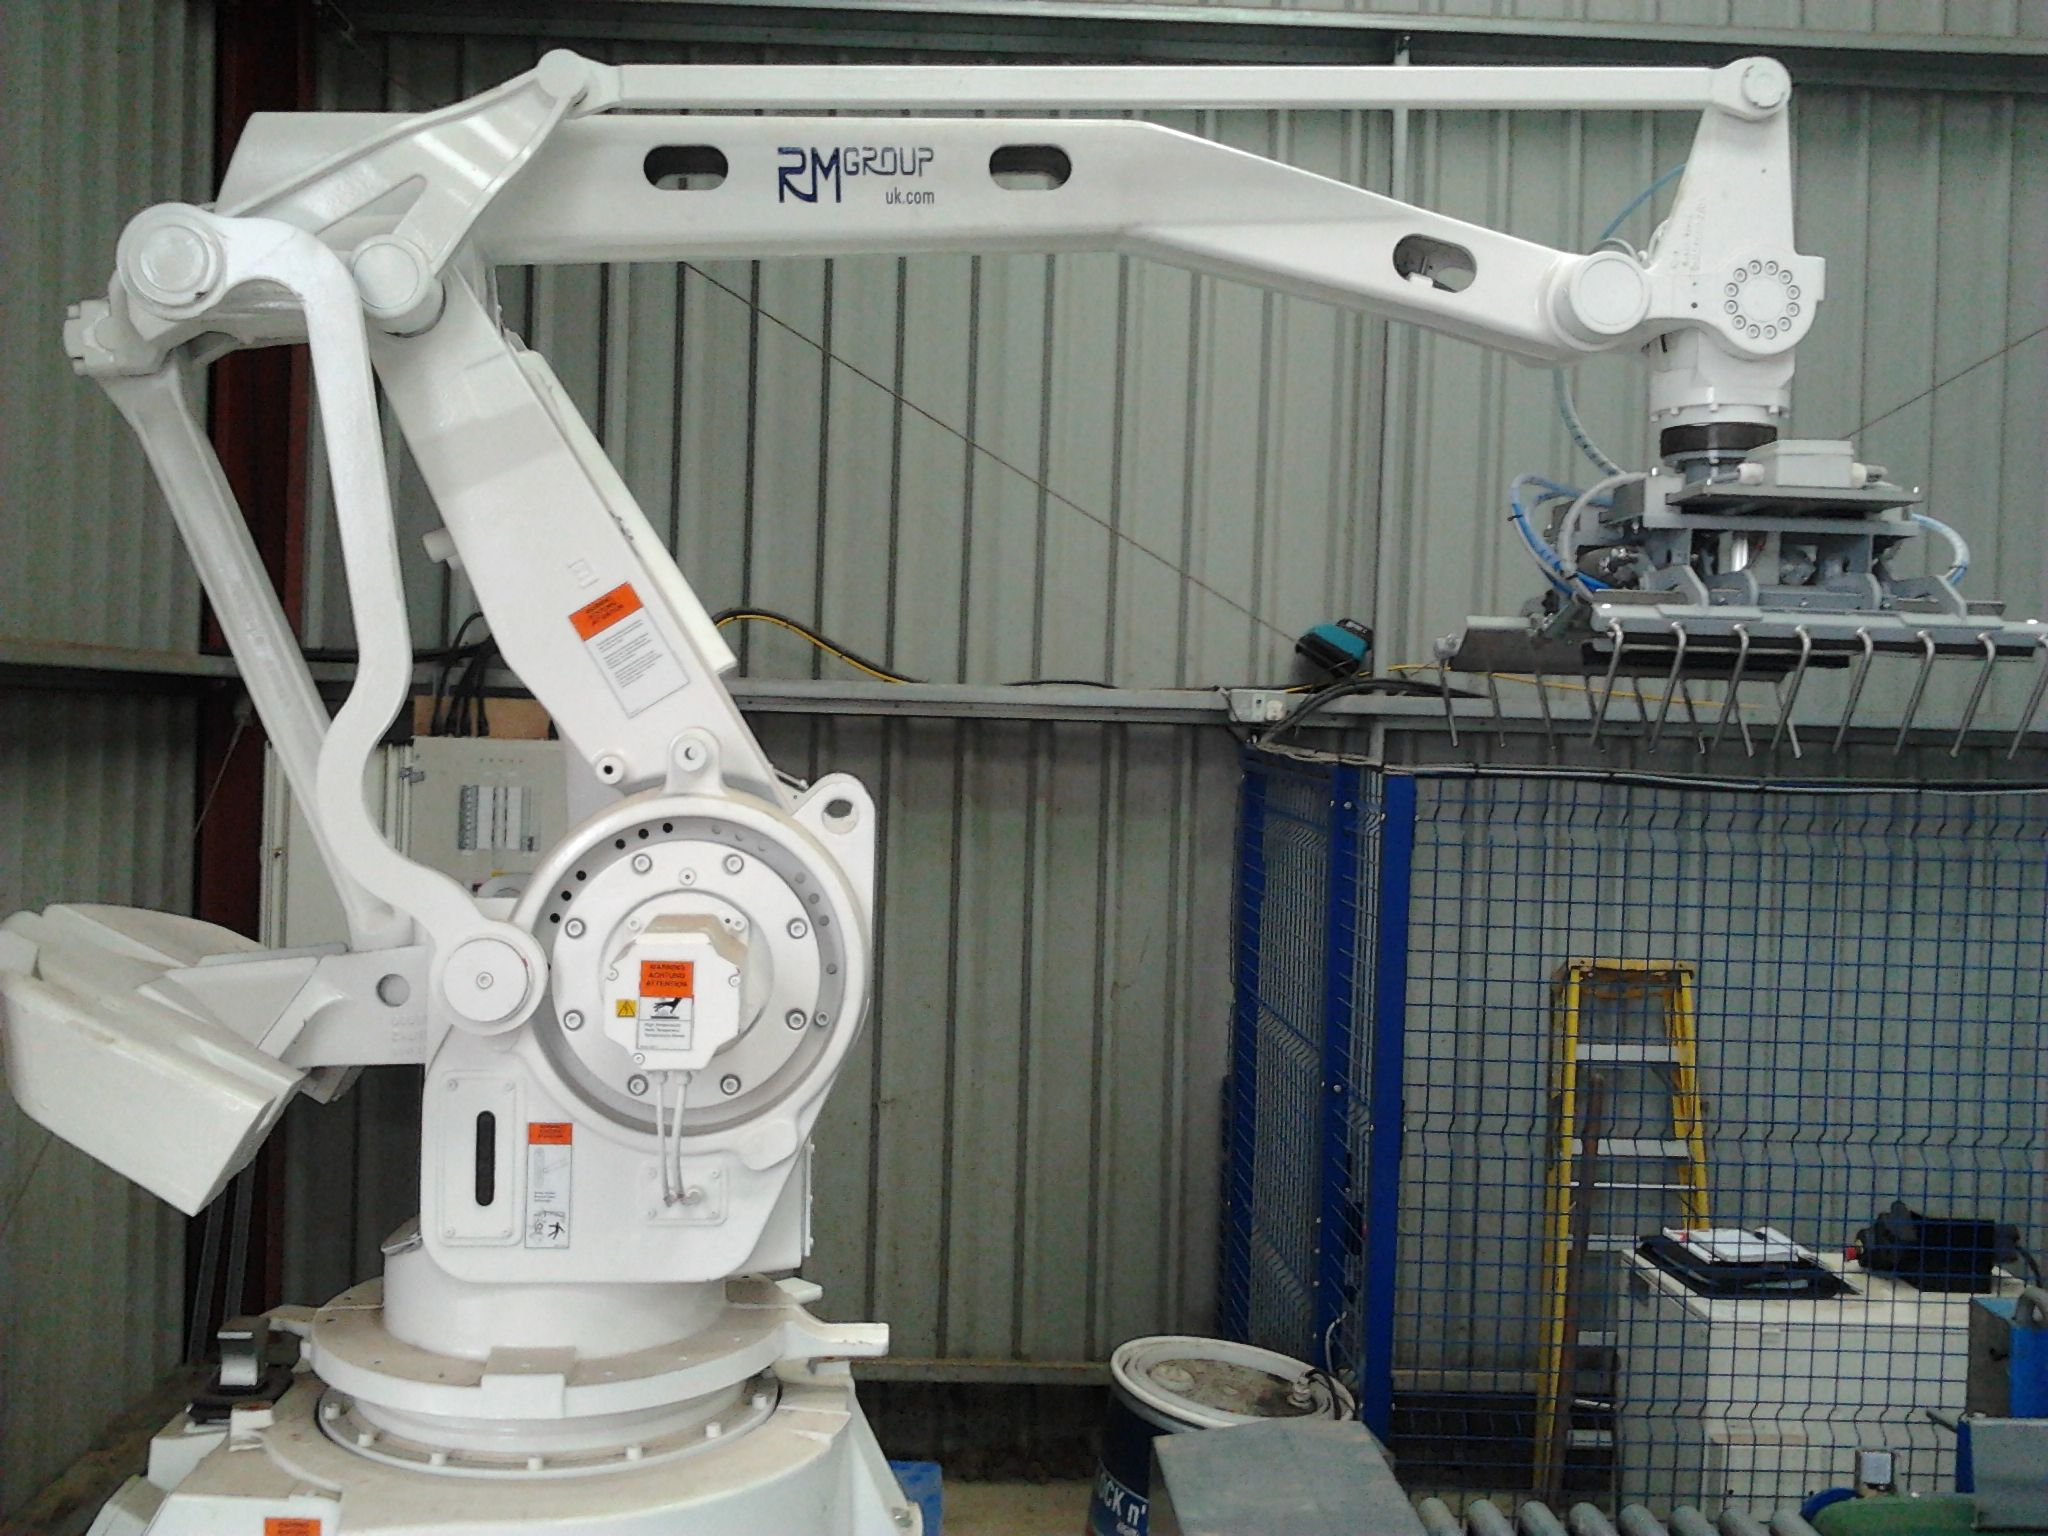 Abb Palletising Robot From Rmgroup